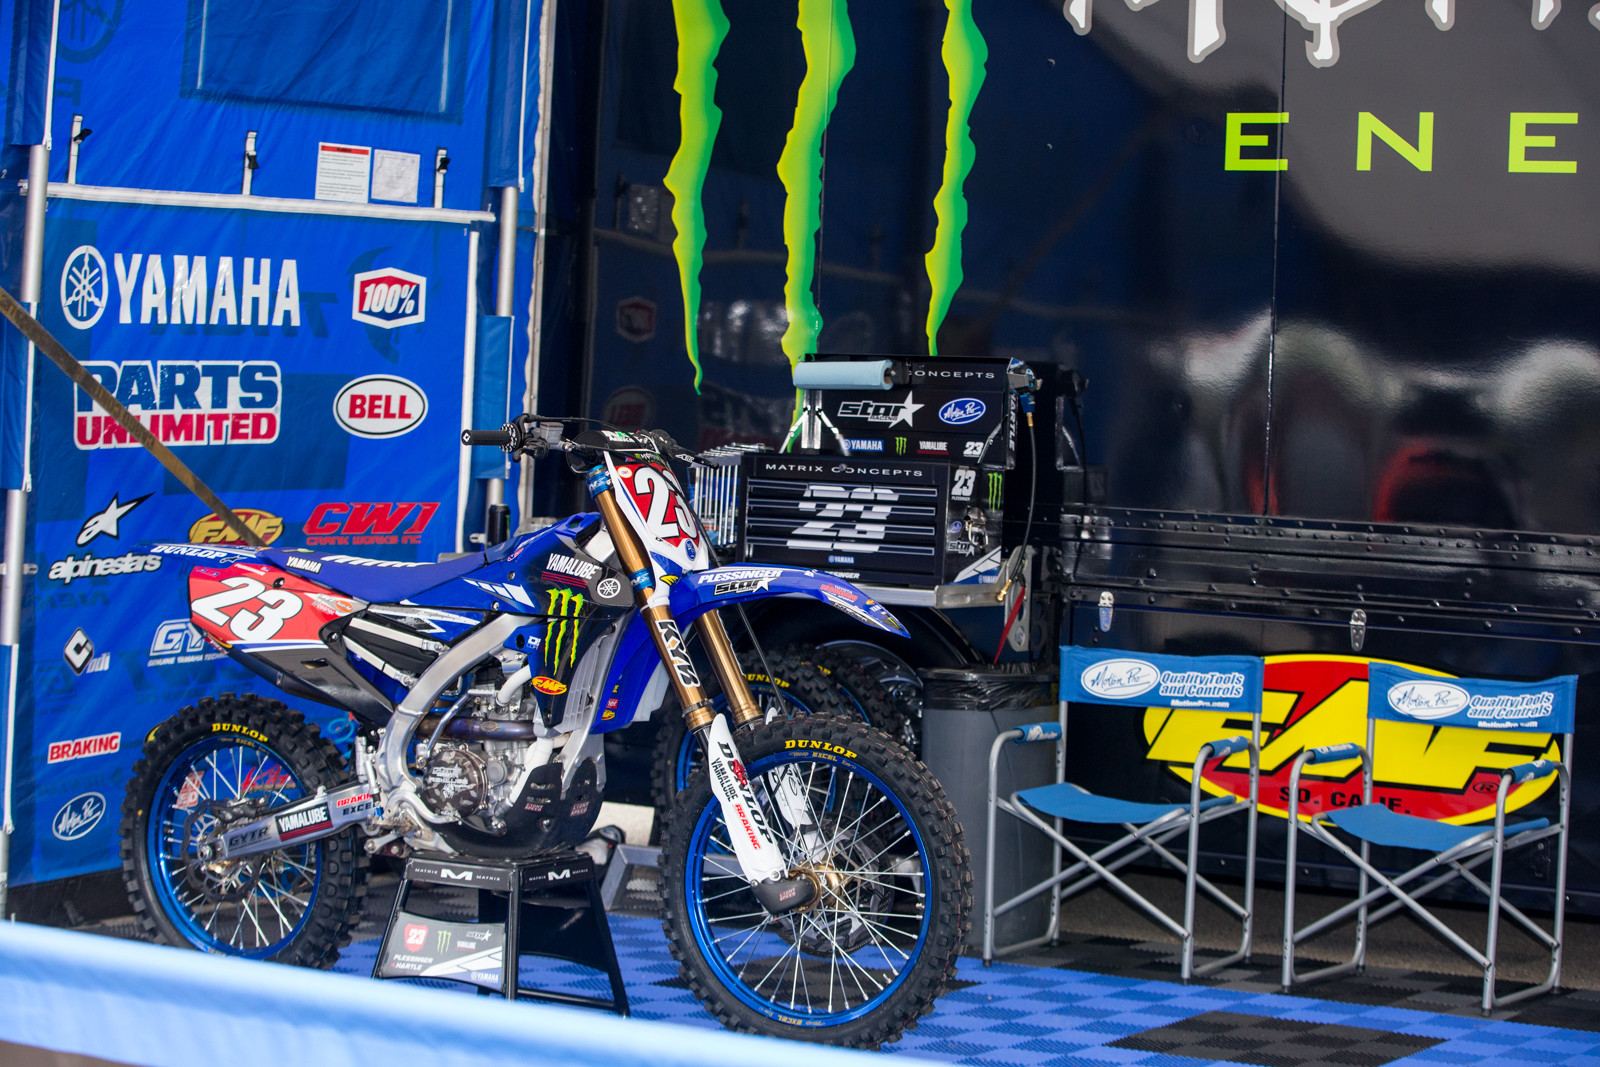 With Mitchell Oldenburg and Justin Cooper out injured, Aaron Plessinger is the solo man under the Star Racing tent.